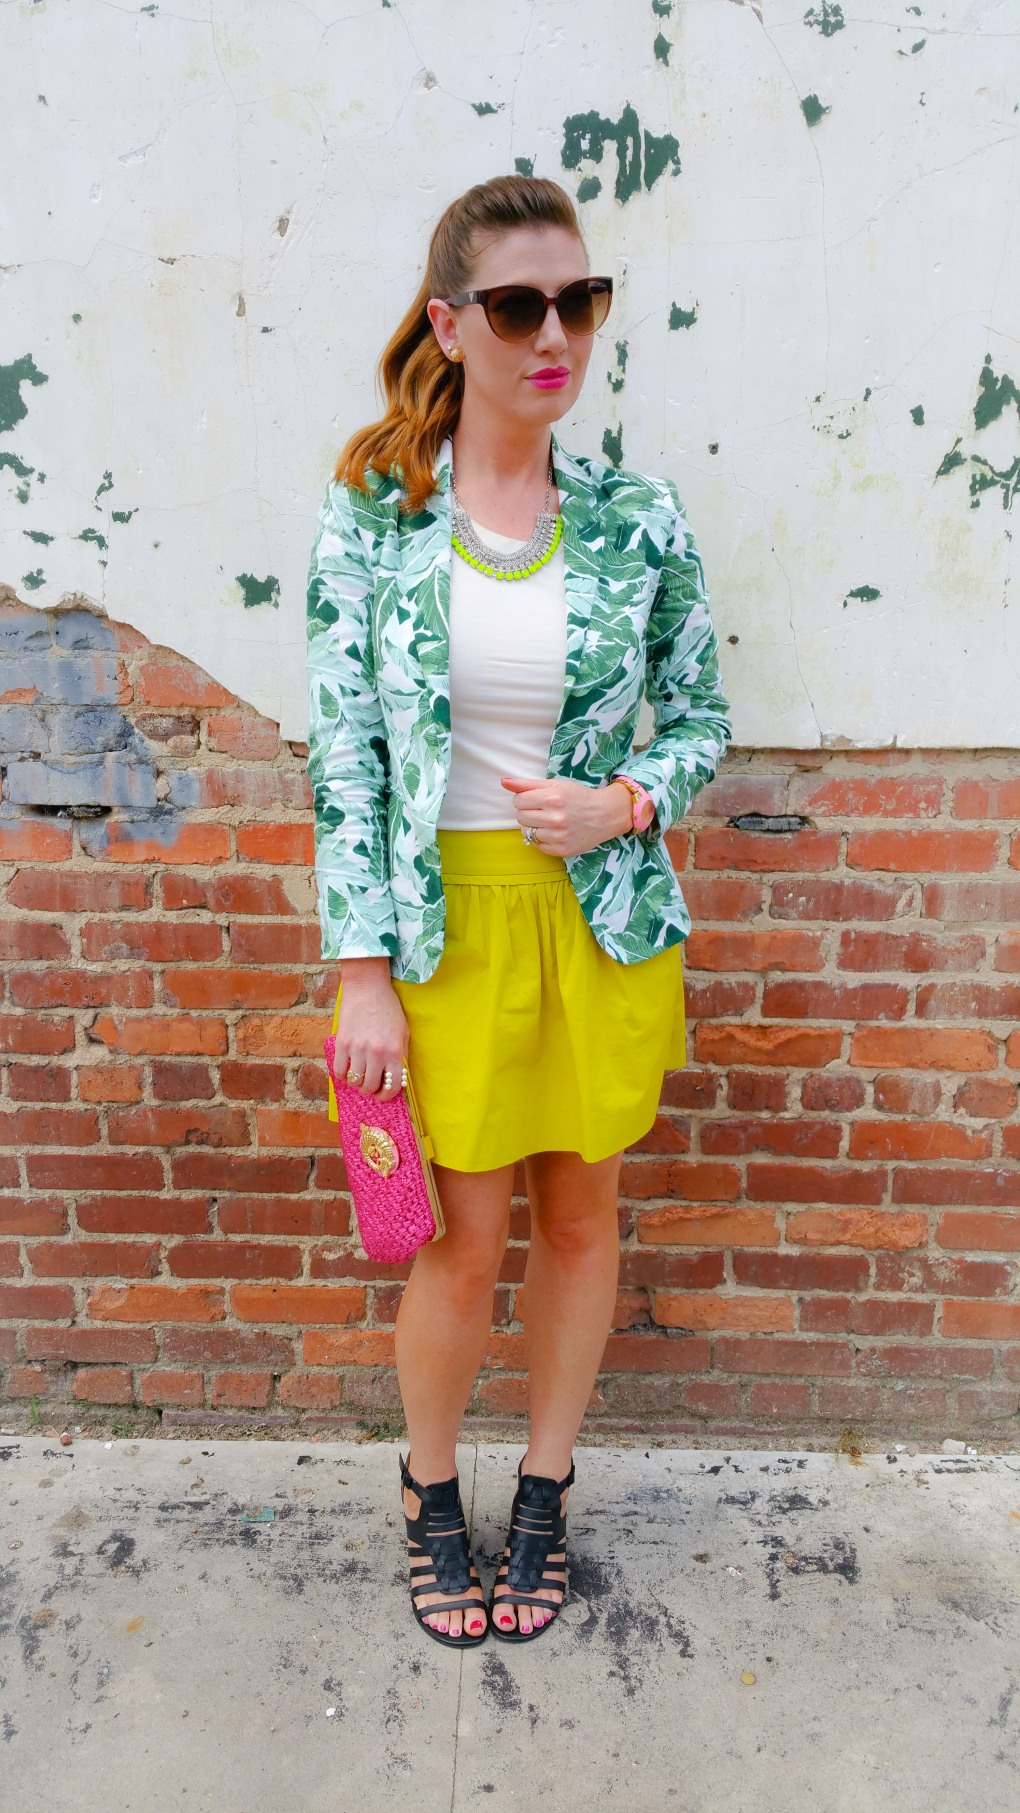 Jacket: Joie Blouse: Banana Republic Skirt: JCREW Shoes: Kenneth Cole Reaction Sunnies: Guess Bag: Lily Pulitzer